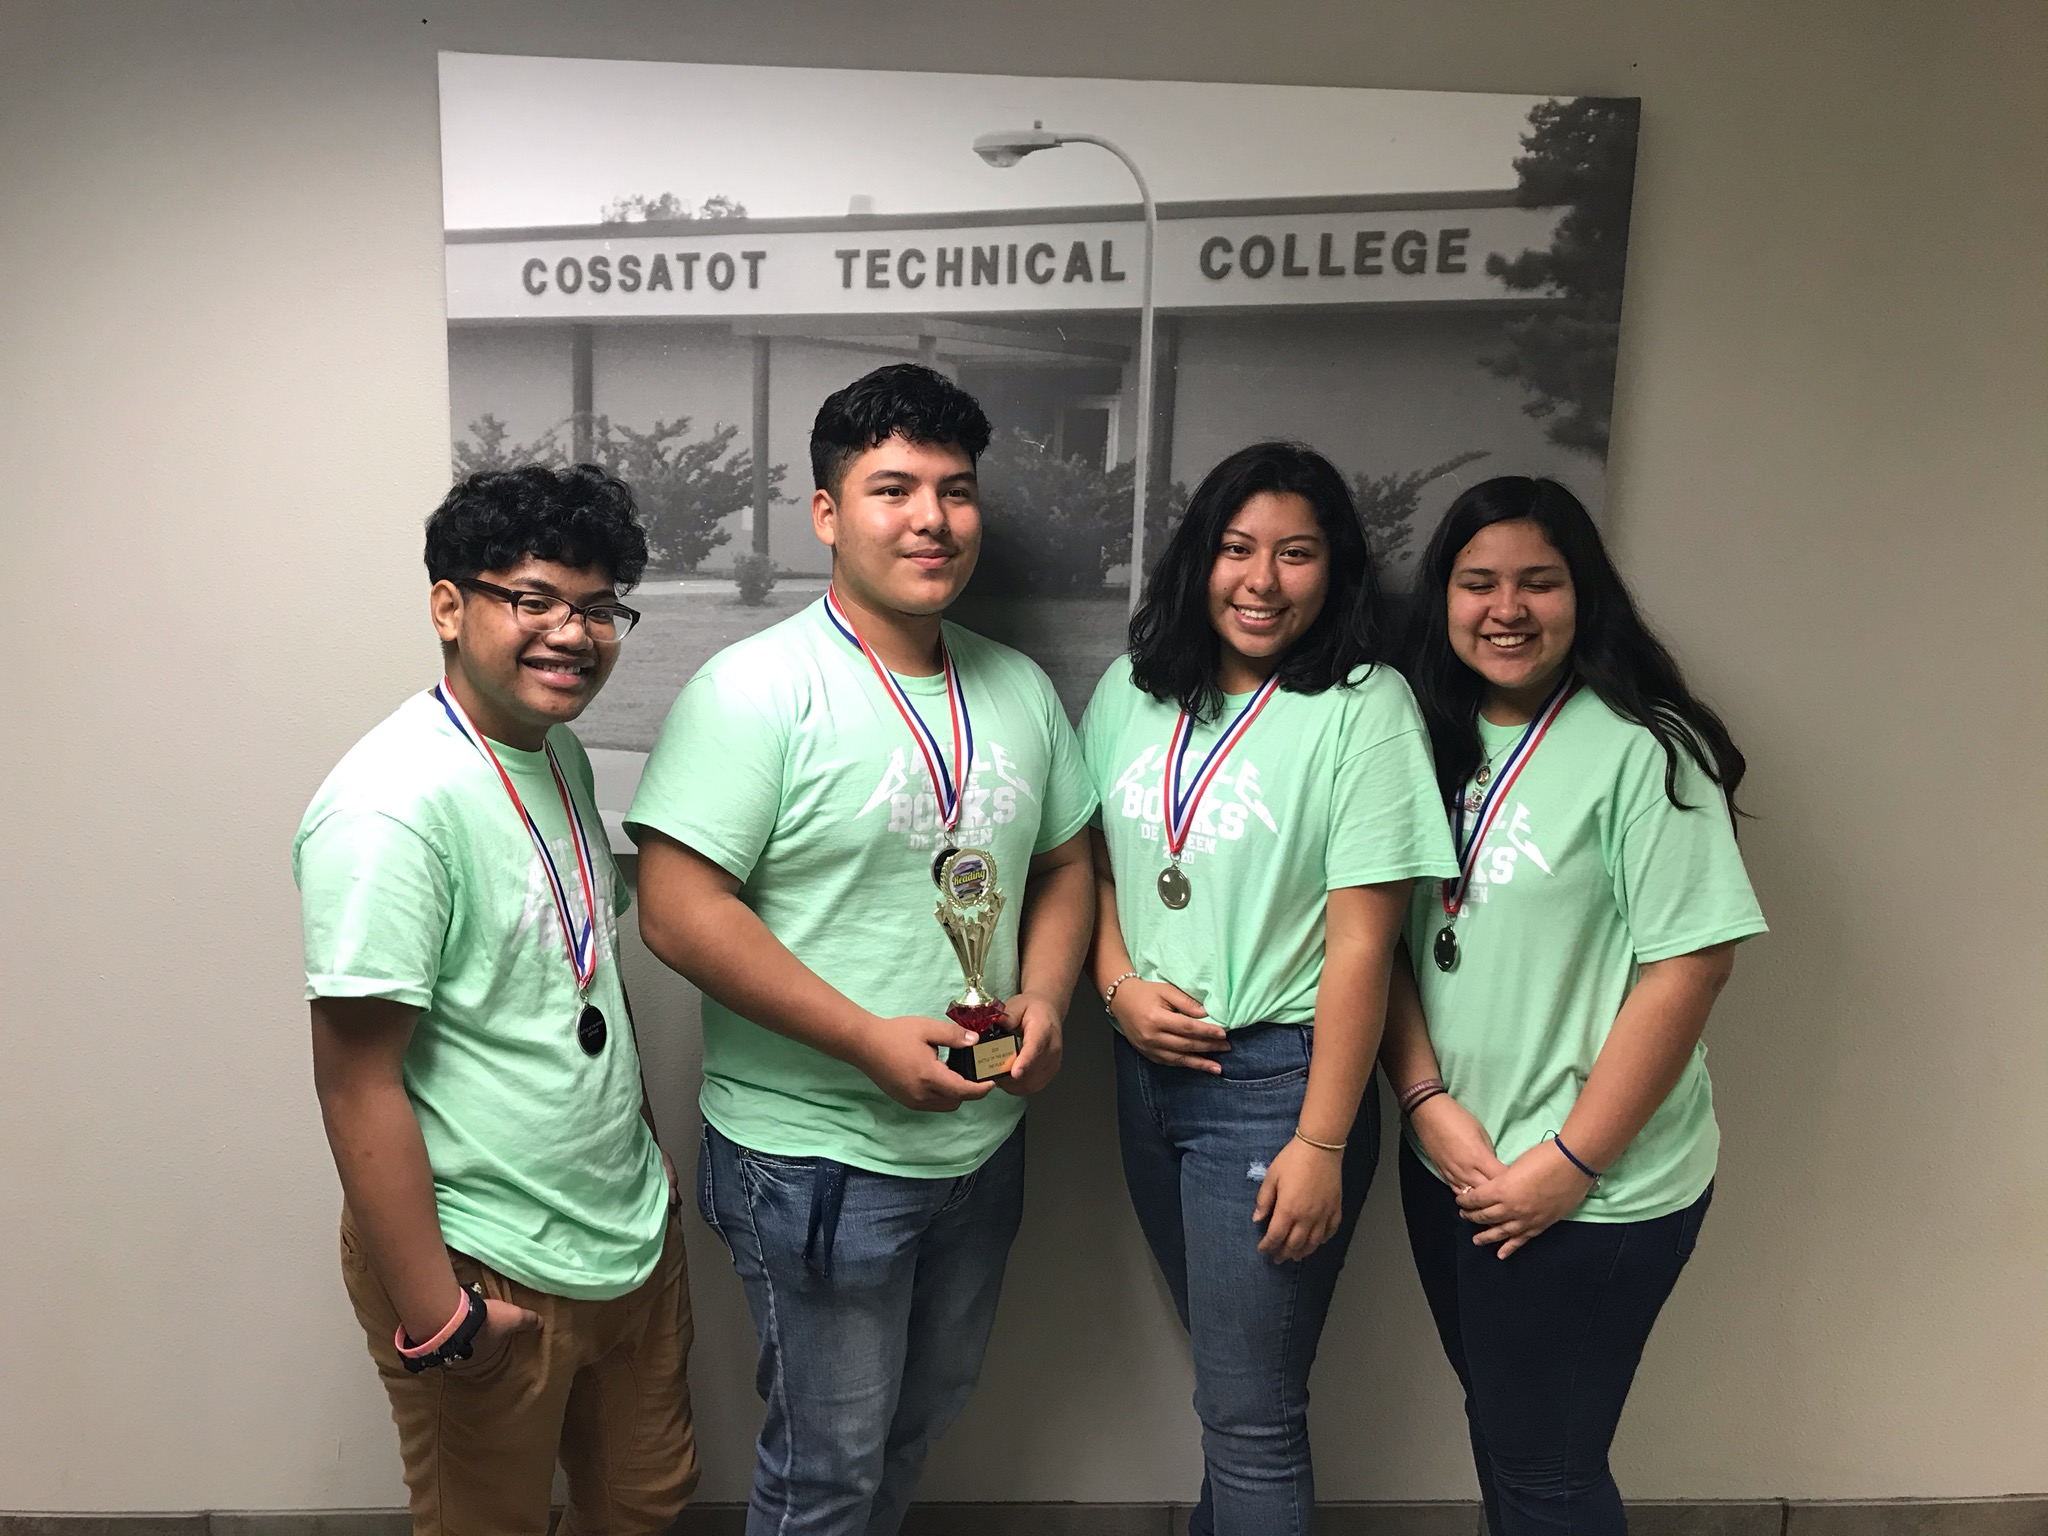 Team members (in no particular order): Romeo Timothy, Jafet Sotelo, Brittany Hernandez, Litzi Flores